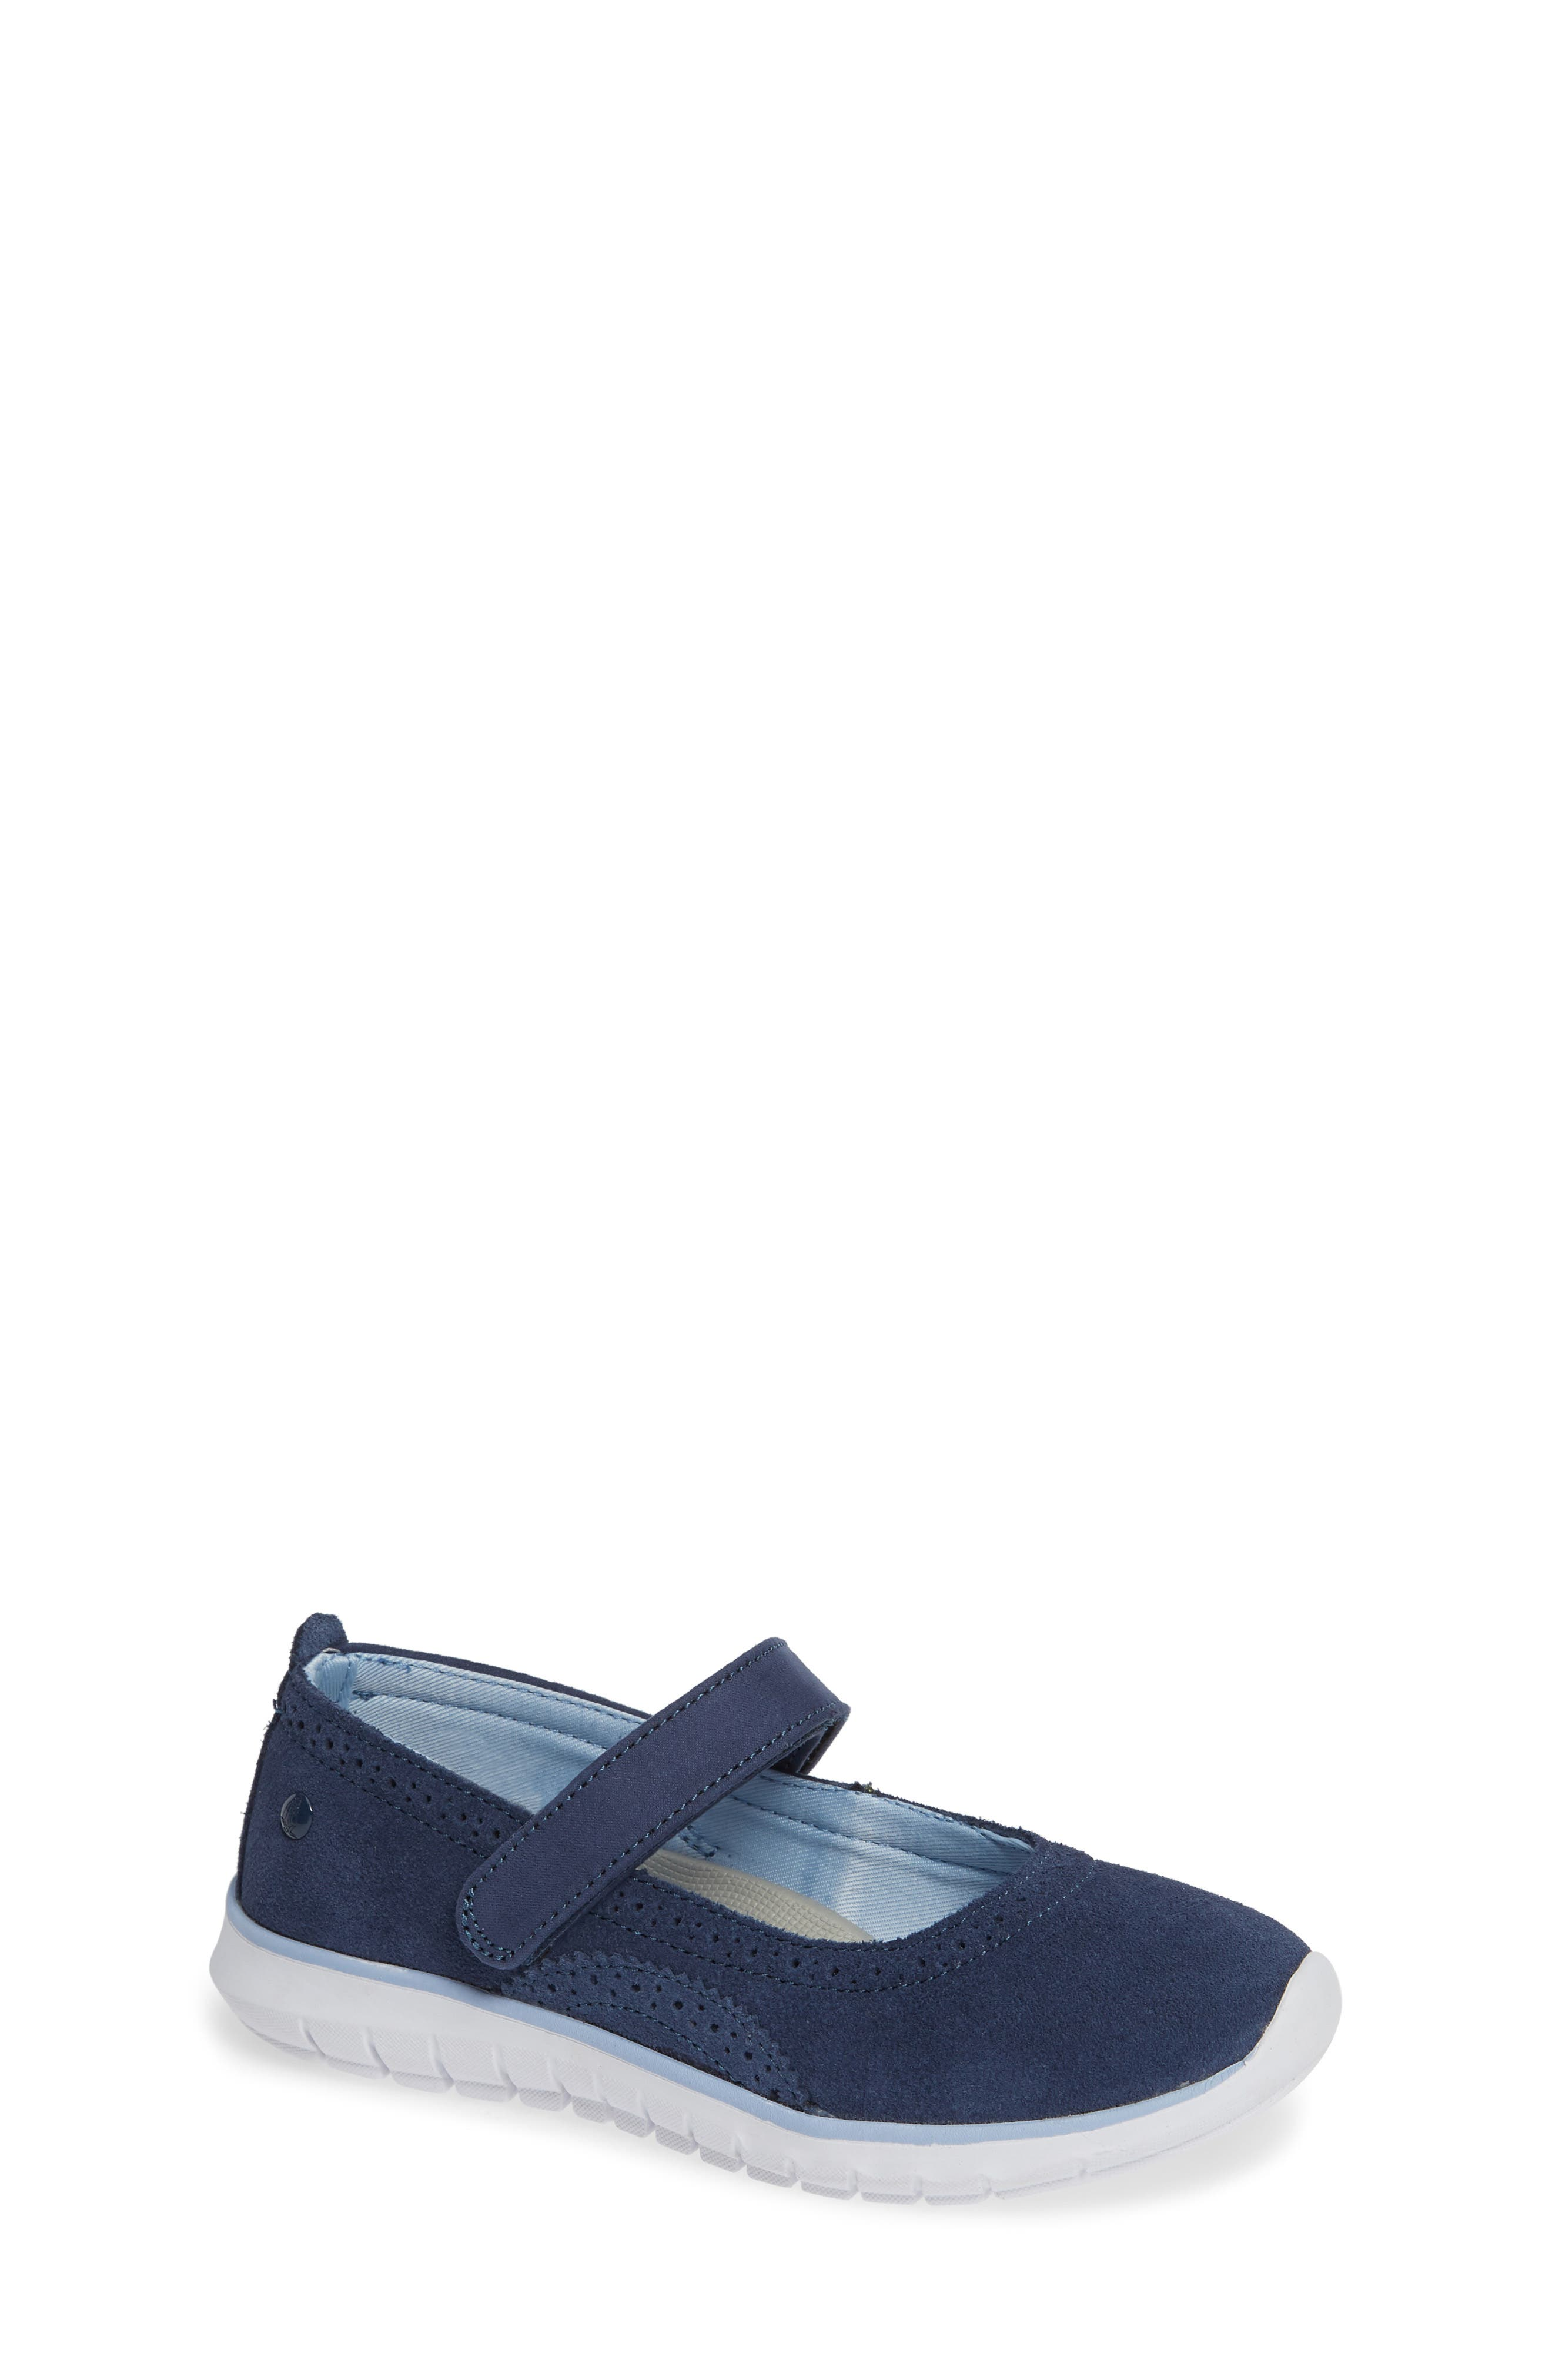 Flote Tricia Mary Jane Flat,                             Main thumbnail 1, color,                             NAVY